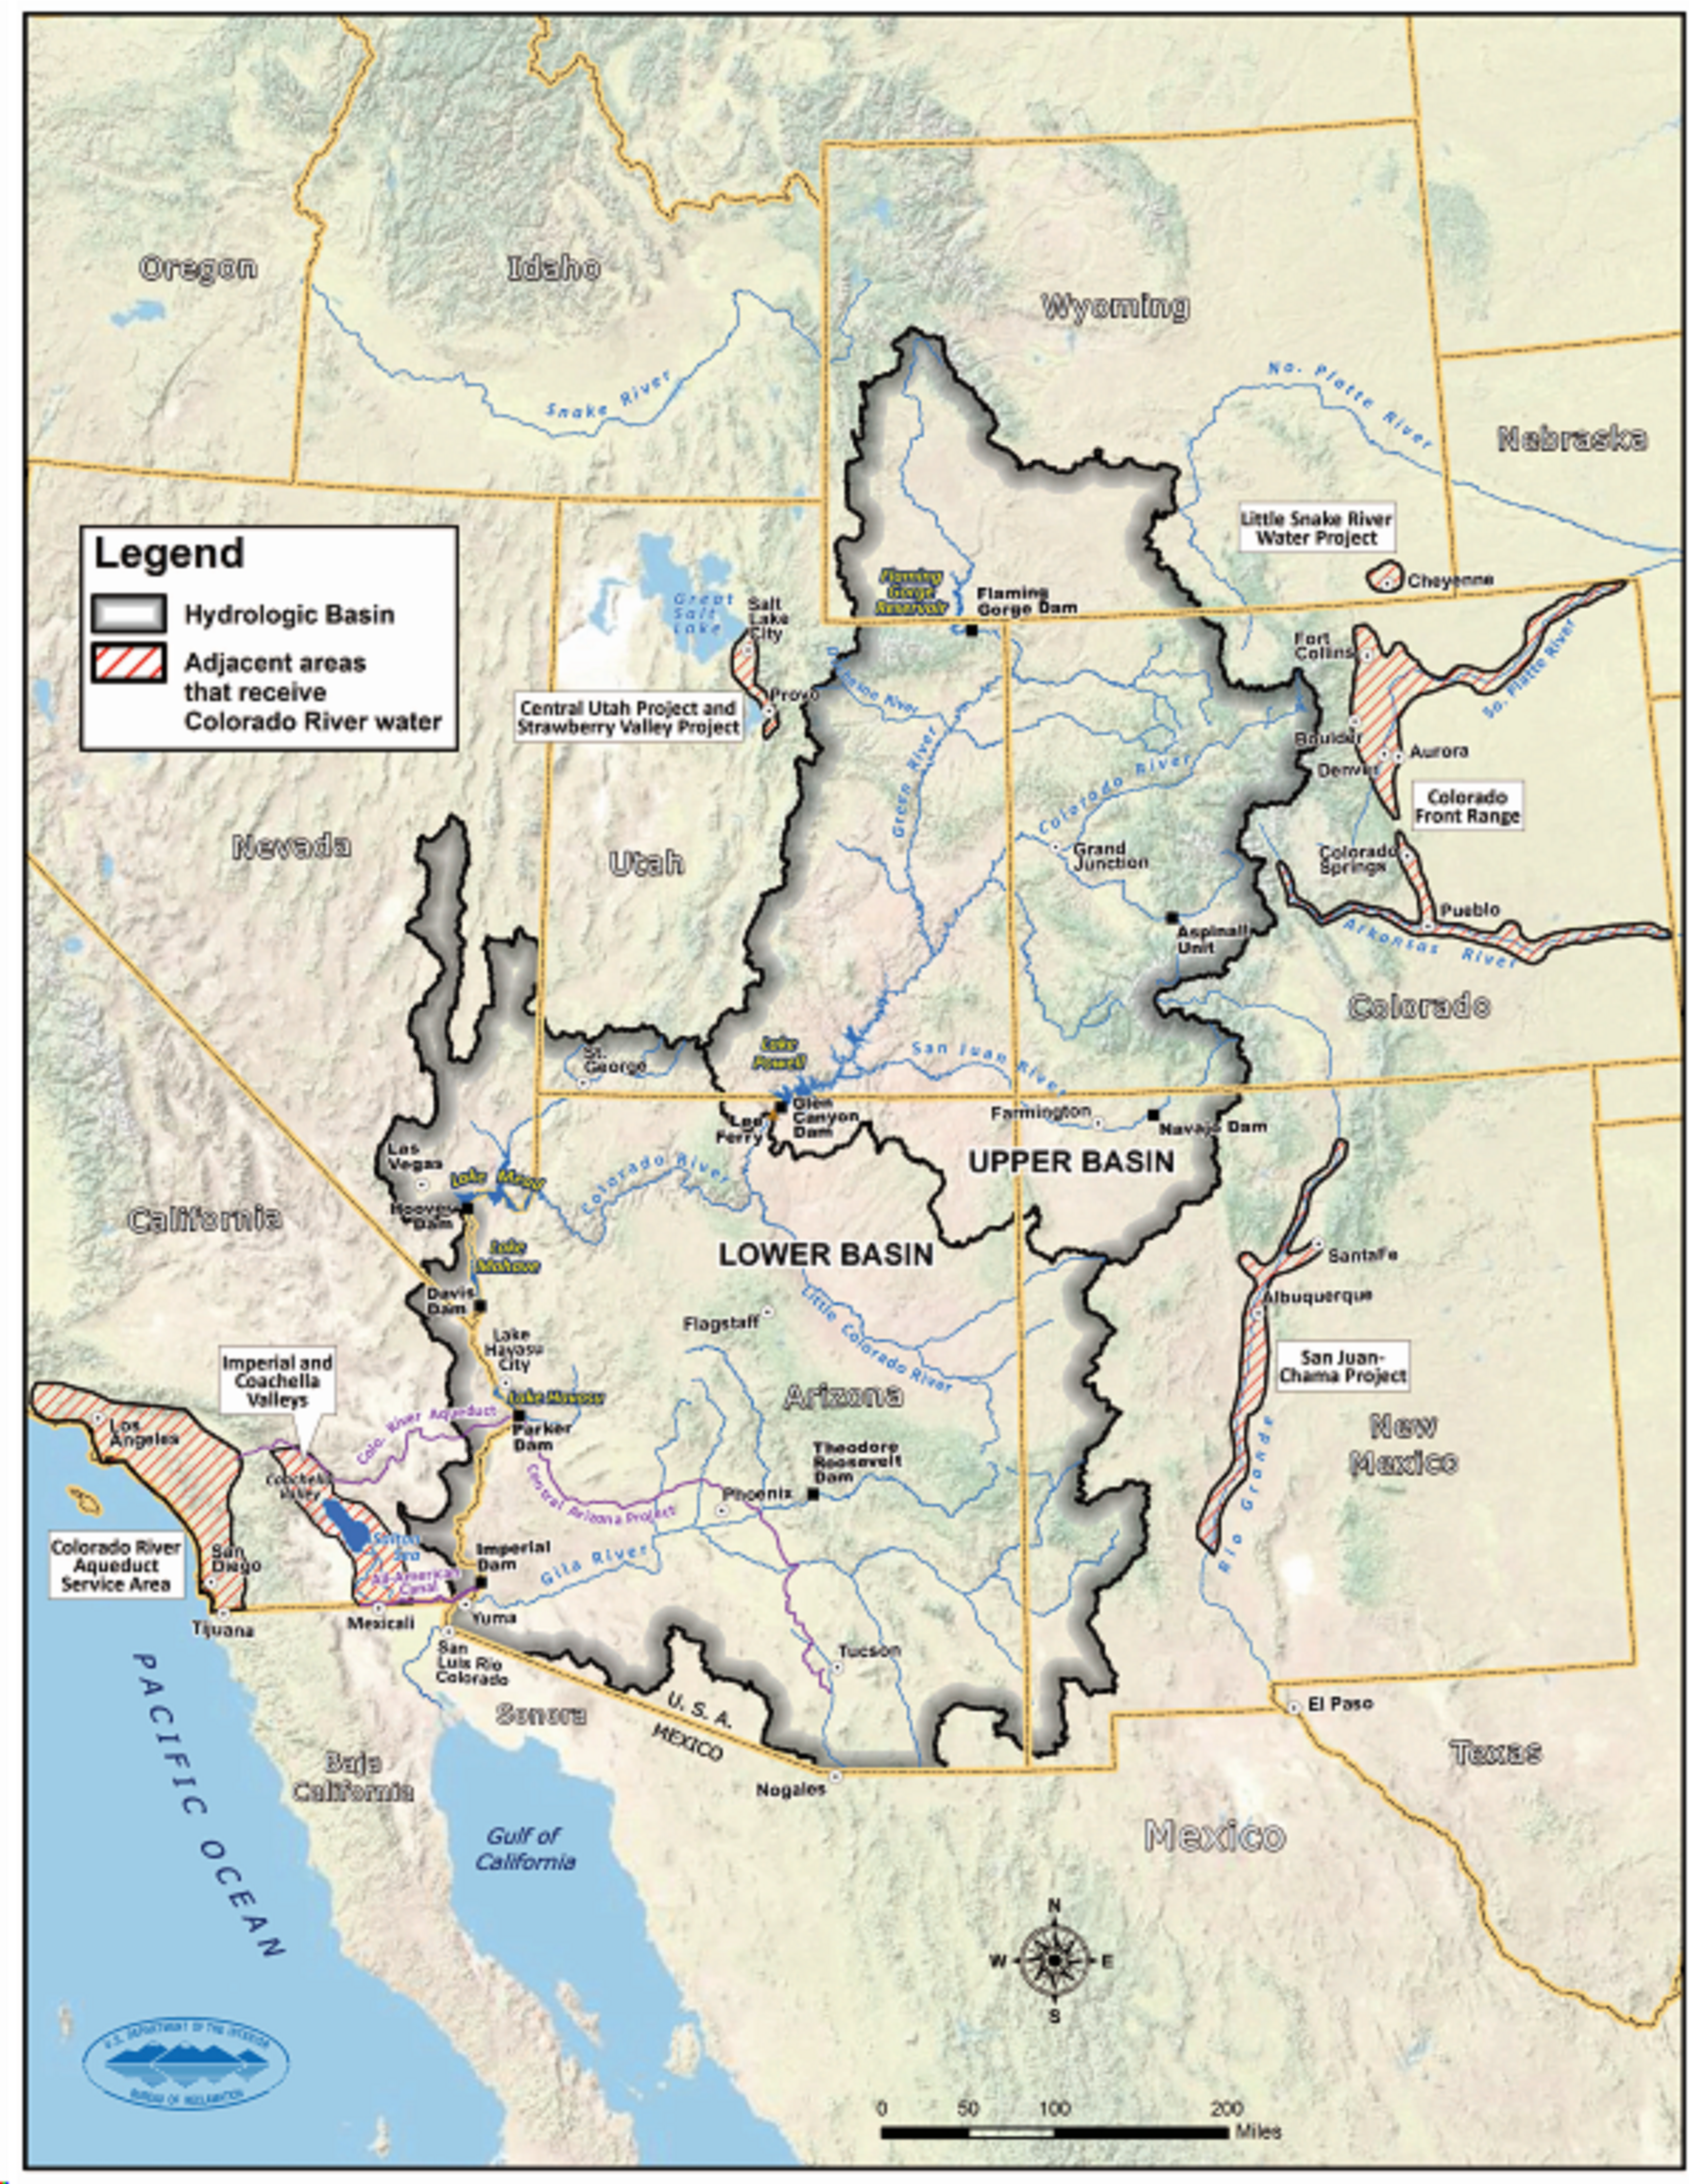 New Water Demand Management Agreement on the Colorado River